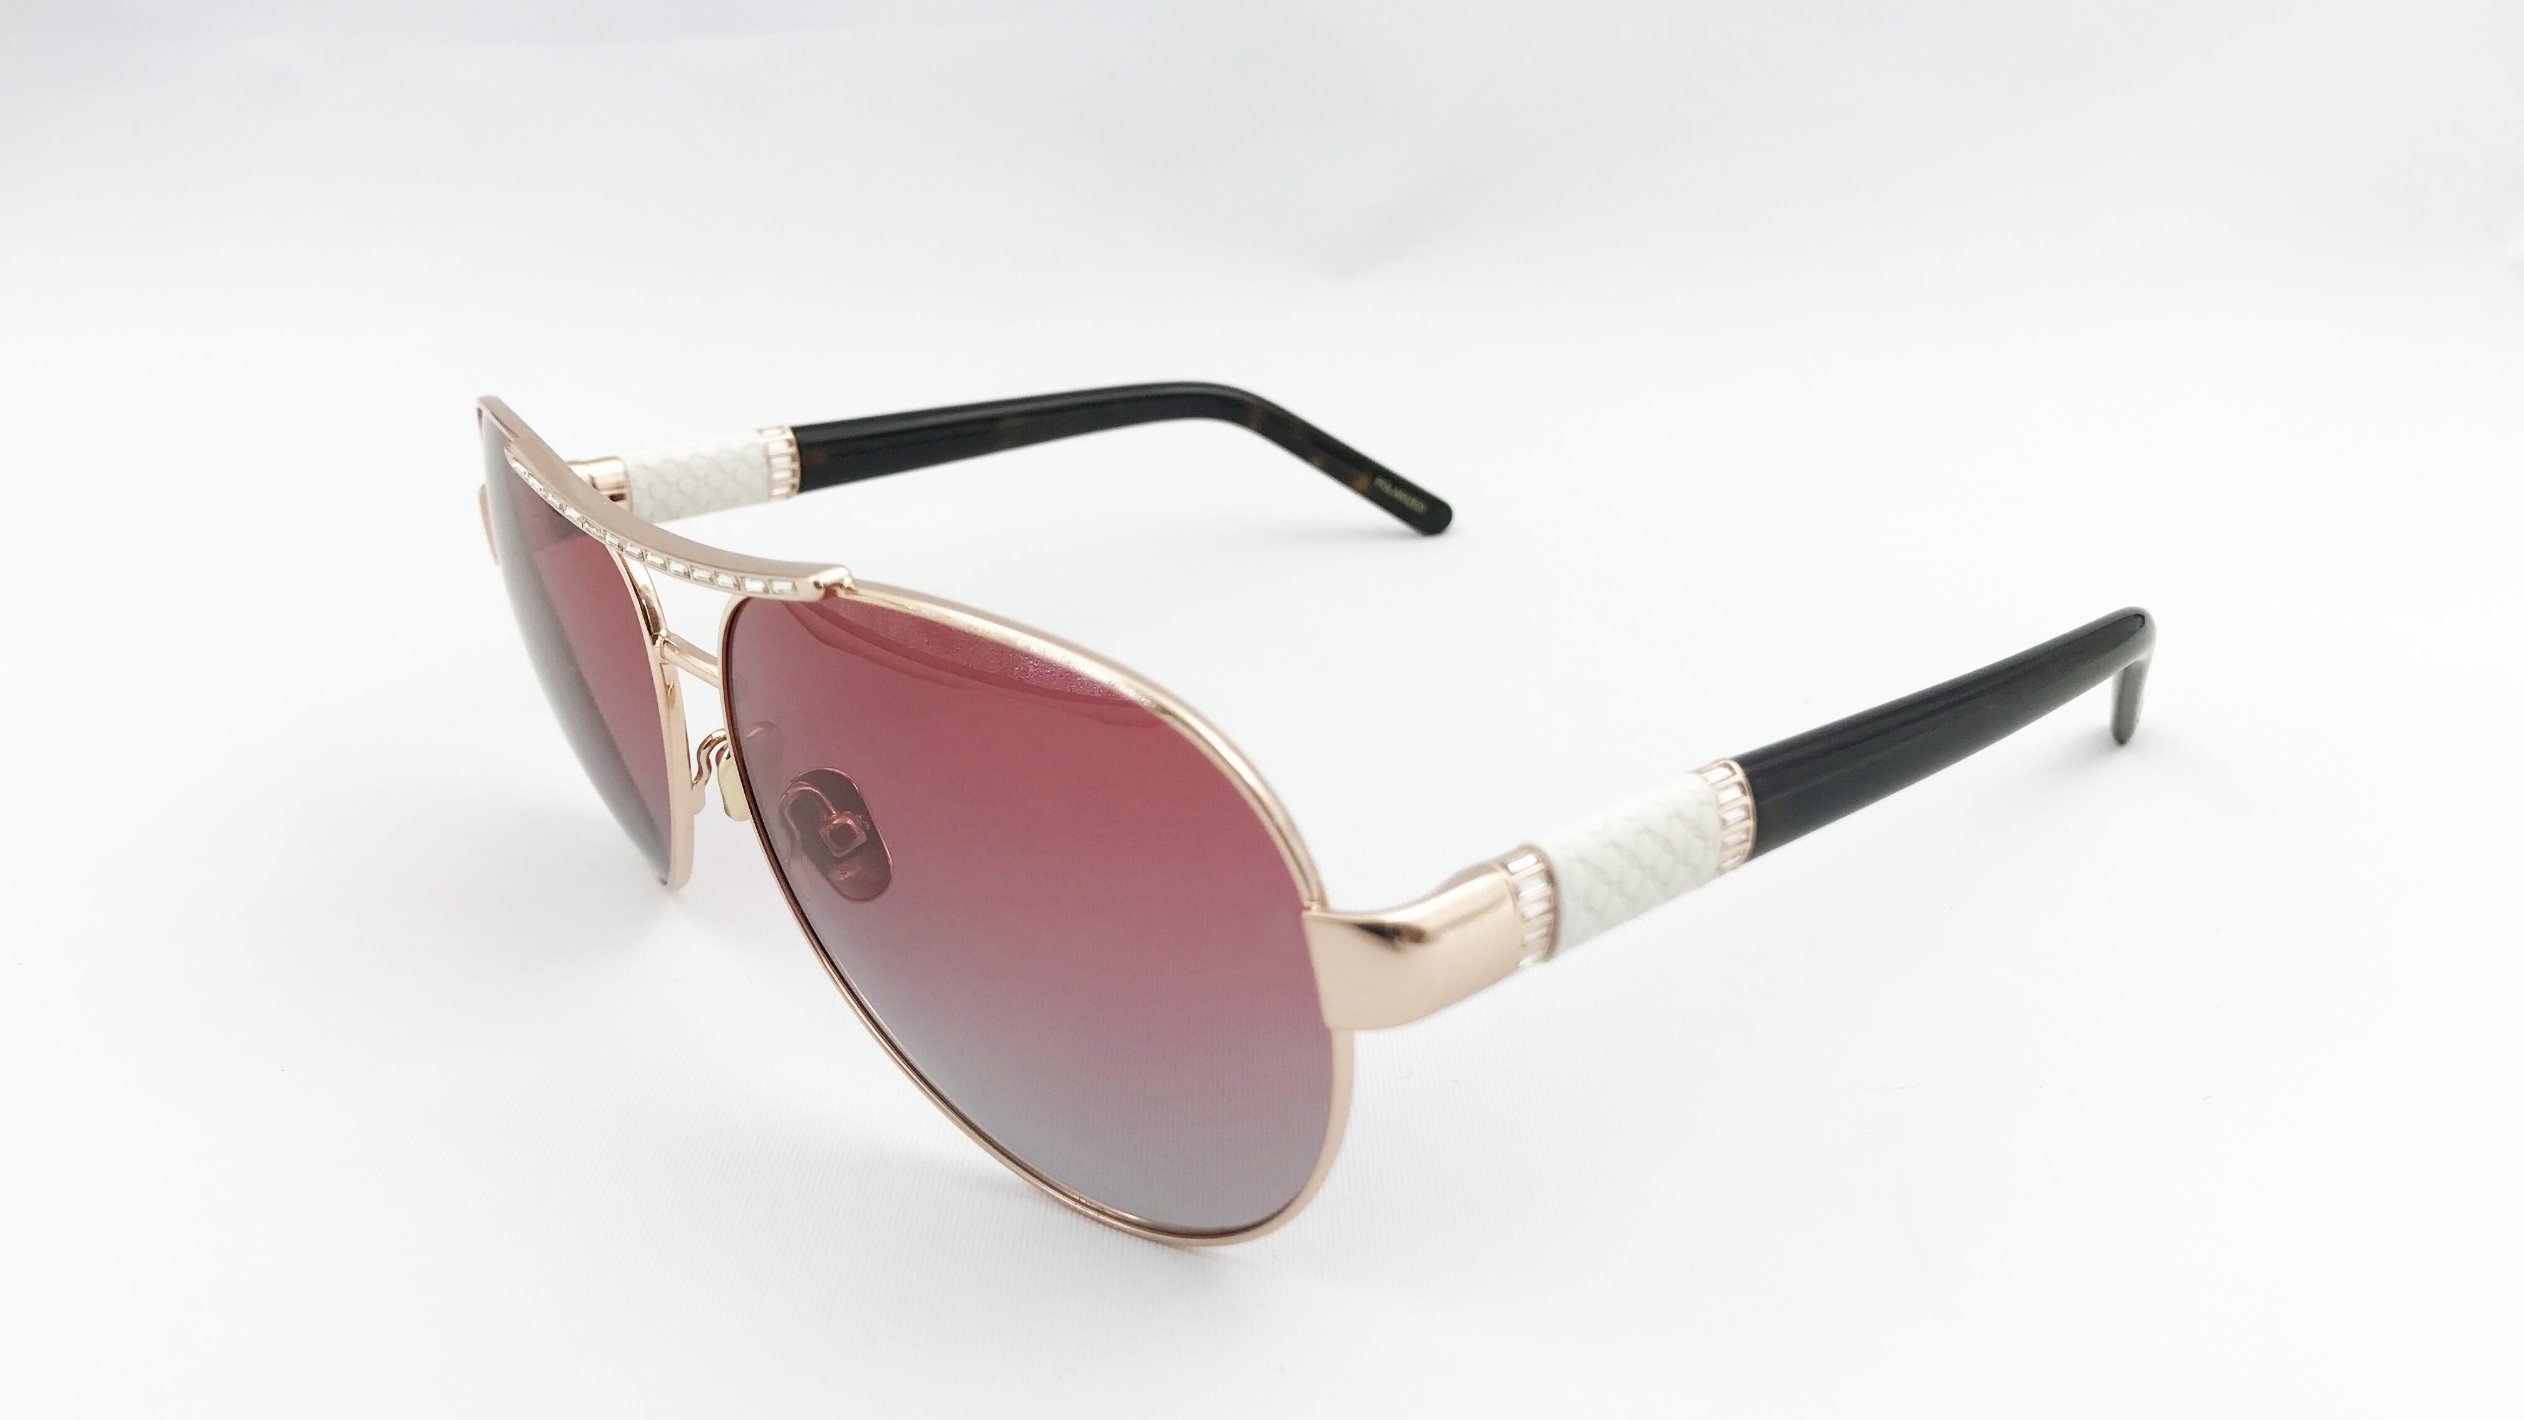 Luxury and Fashion Chorpard Style Metal Sunglasses for Lady